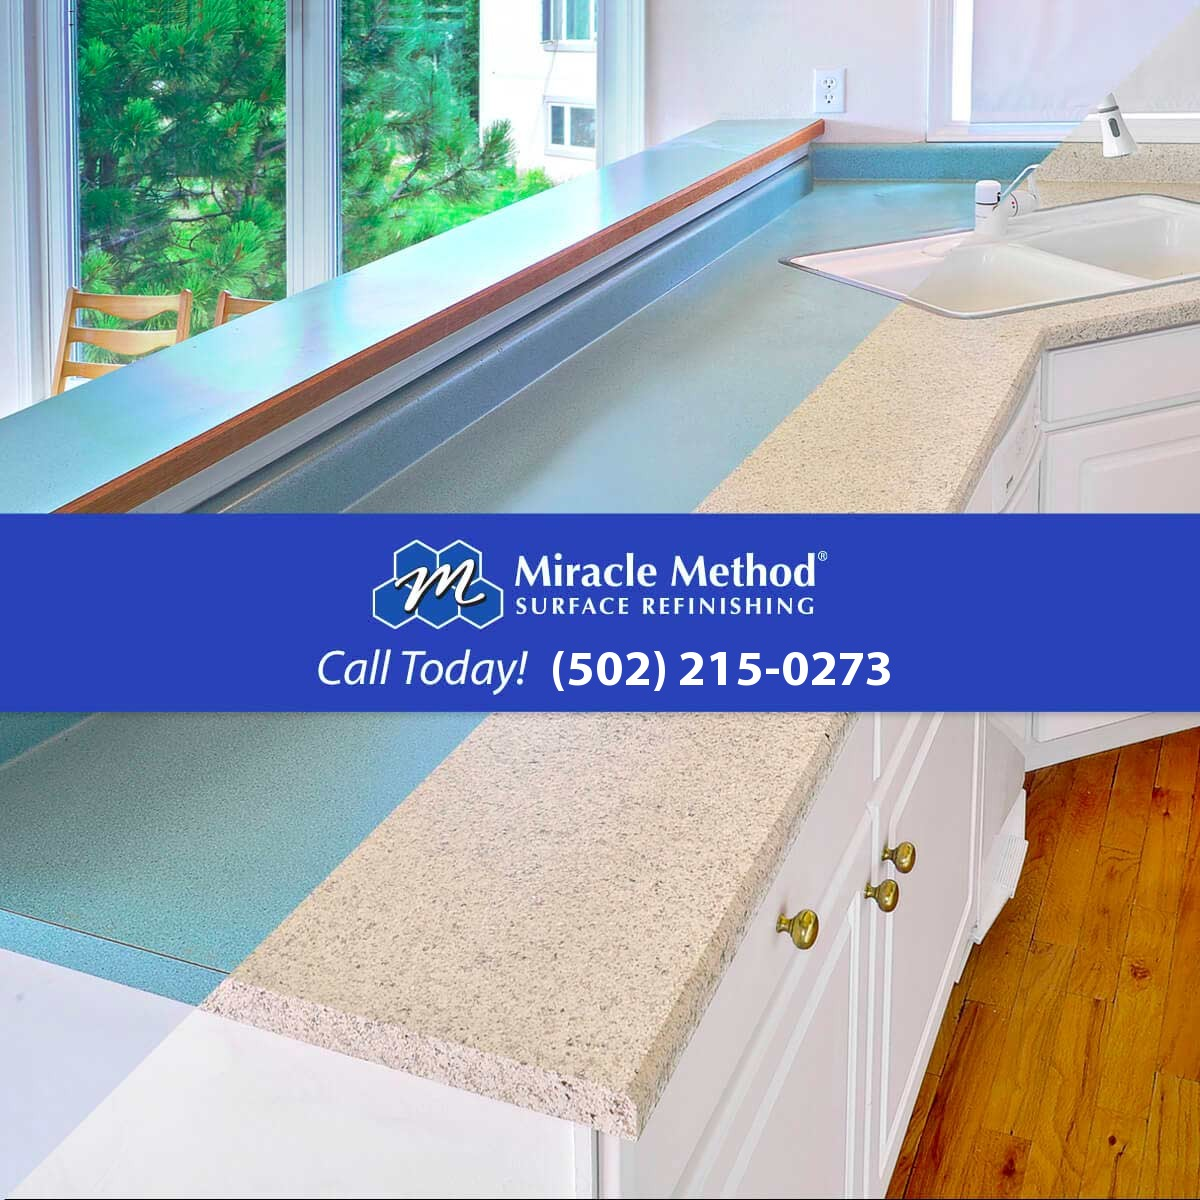 Merveilleux Louisville, KY Surface Refinishing U0026 Repair | Miracle Method Of Louisville